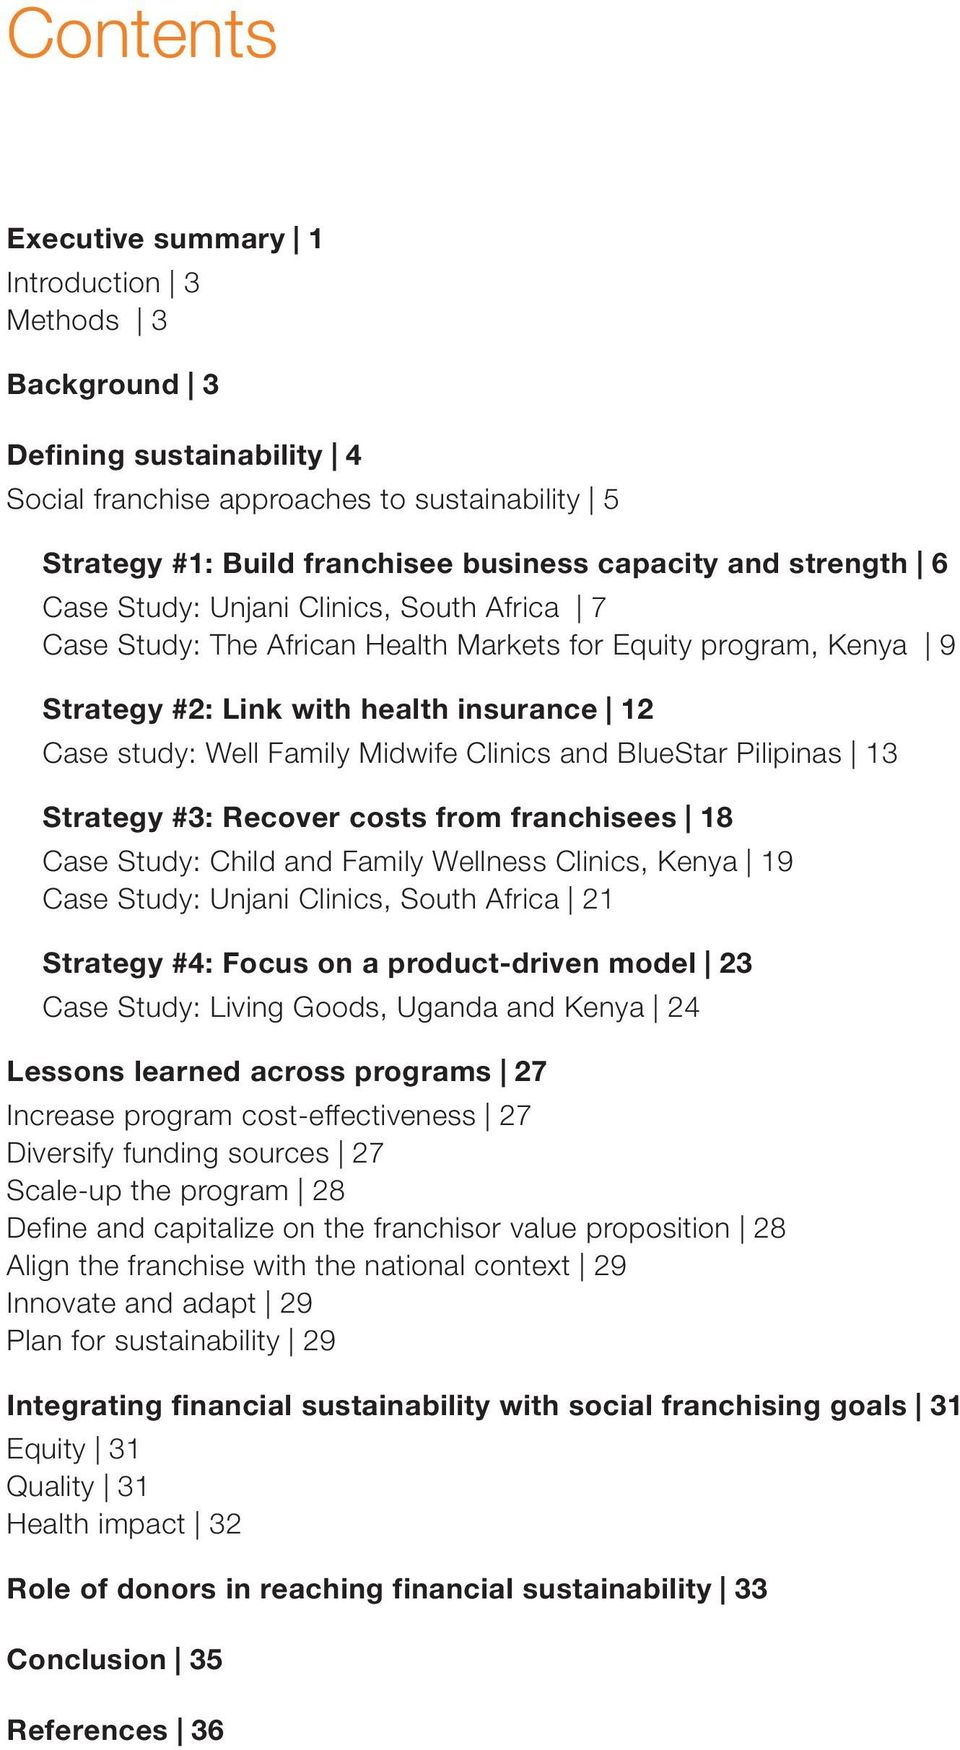 Clinics and BlueStar Pilipinas 13 Strategy #3: Recover costs from franchisees 18 Case Study: Child and Family Wellness Clinics, Kenya 19 Case Study: Unjani Clinics, South Africa 21 Strategy #4: Focus